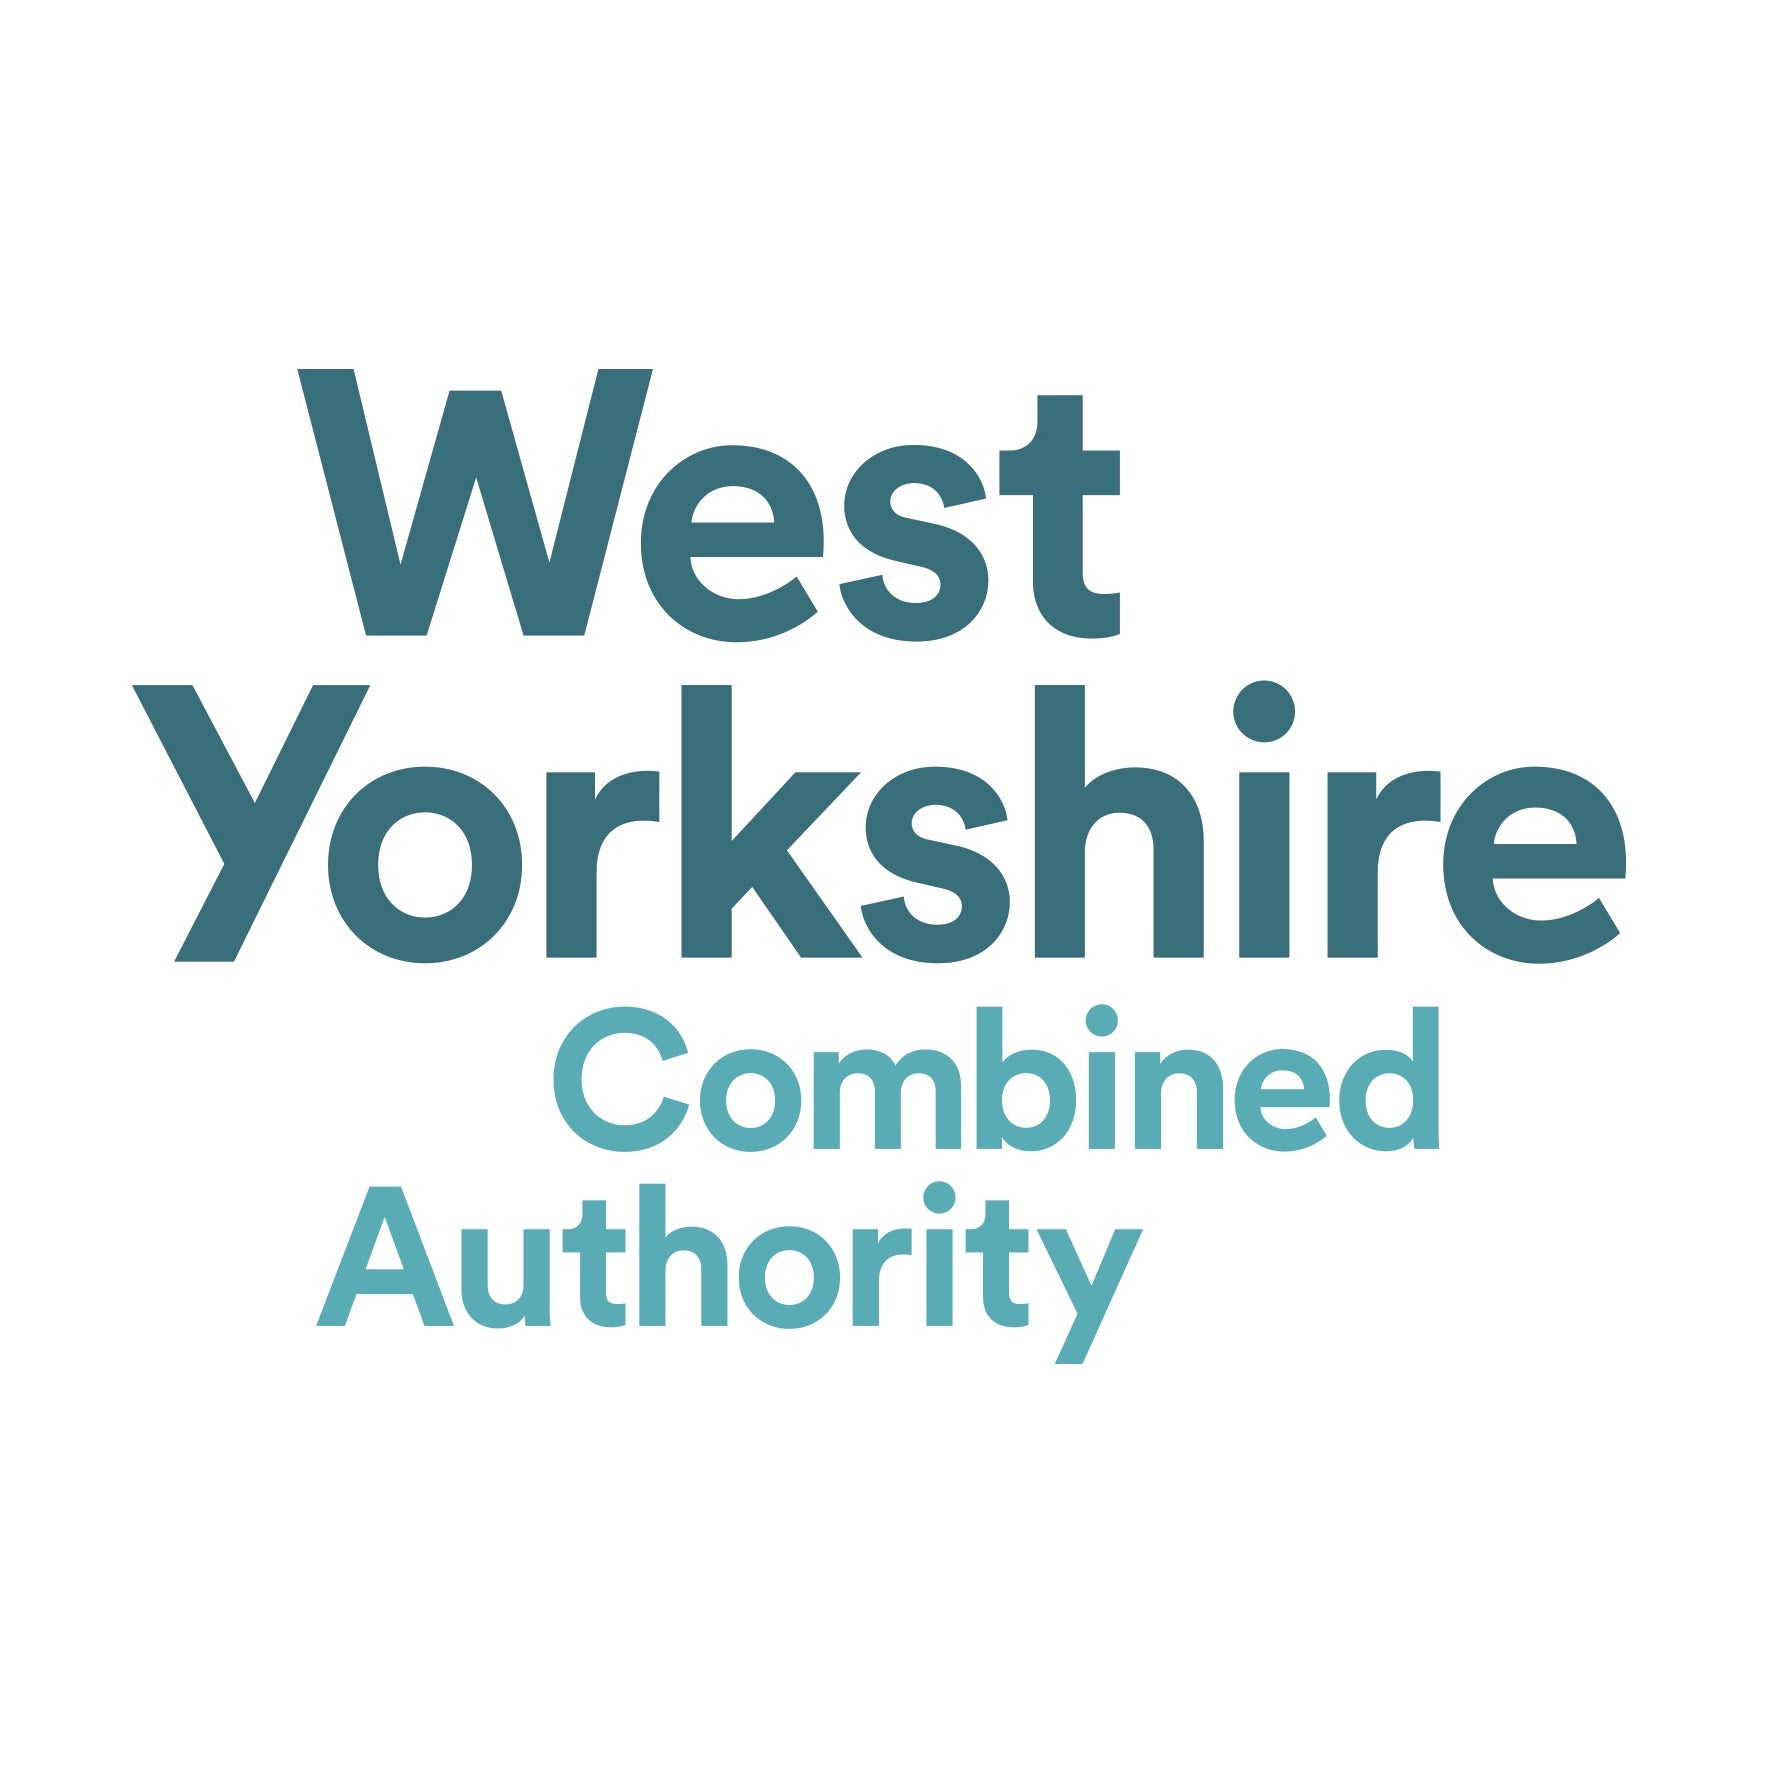 West Yorkshire Combined Authority